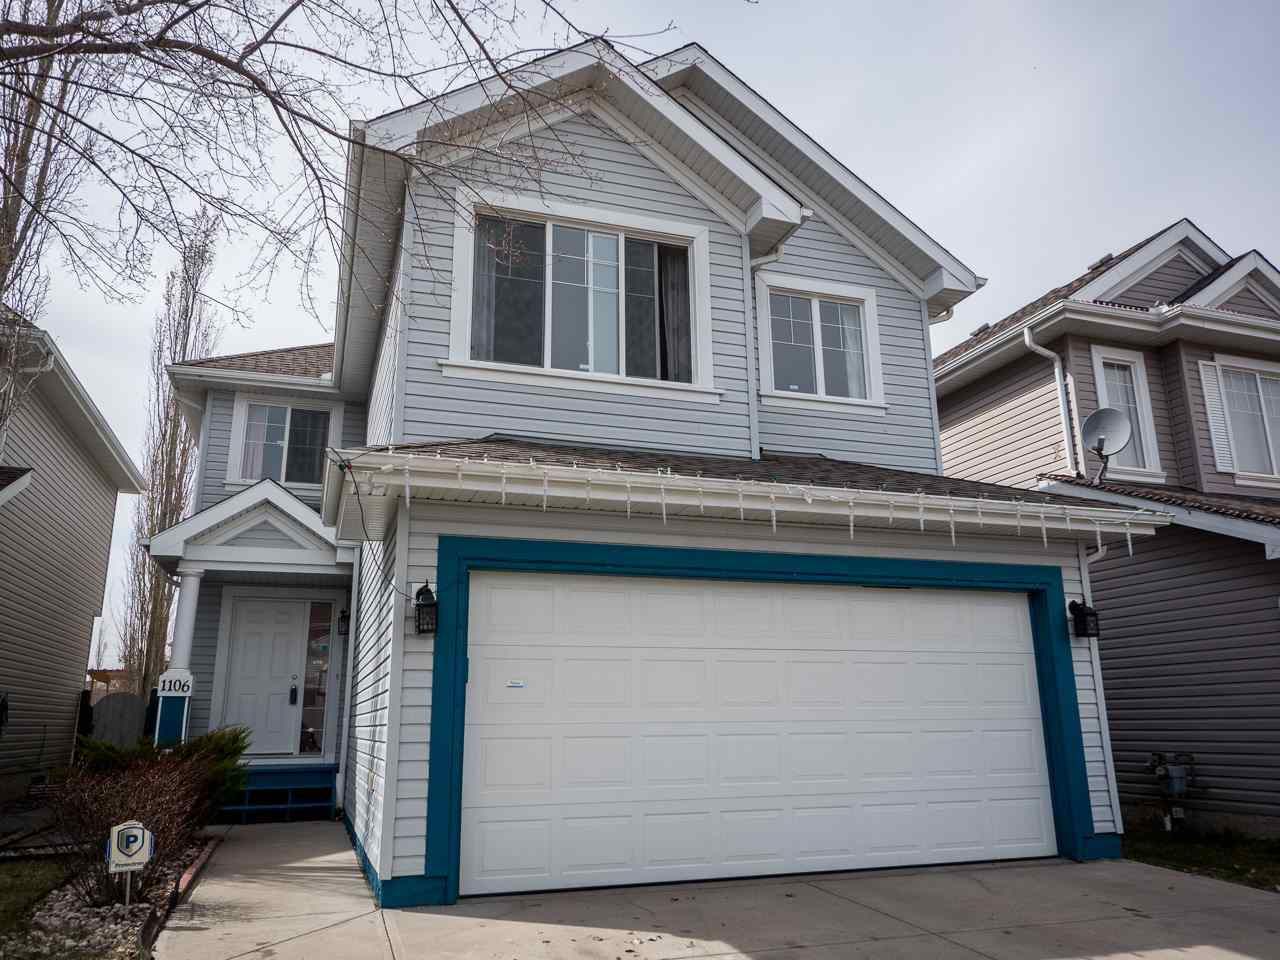 Main Photo: 1106 84 Street in Edmonton: Zone 53 House for sale : MLS(r) # E4062498